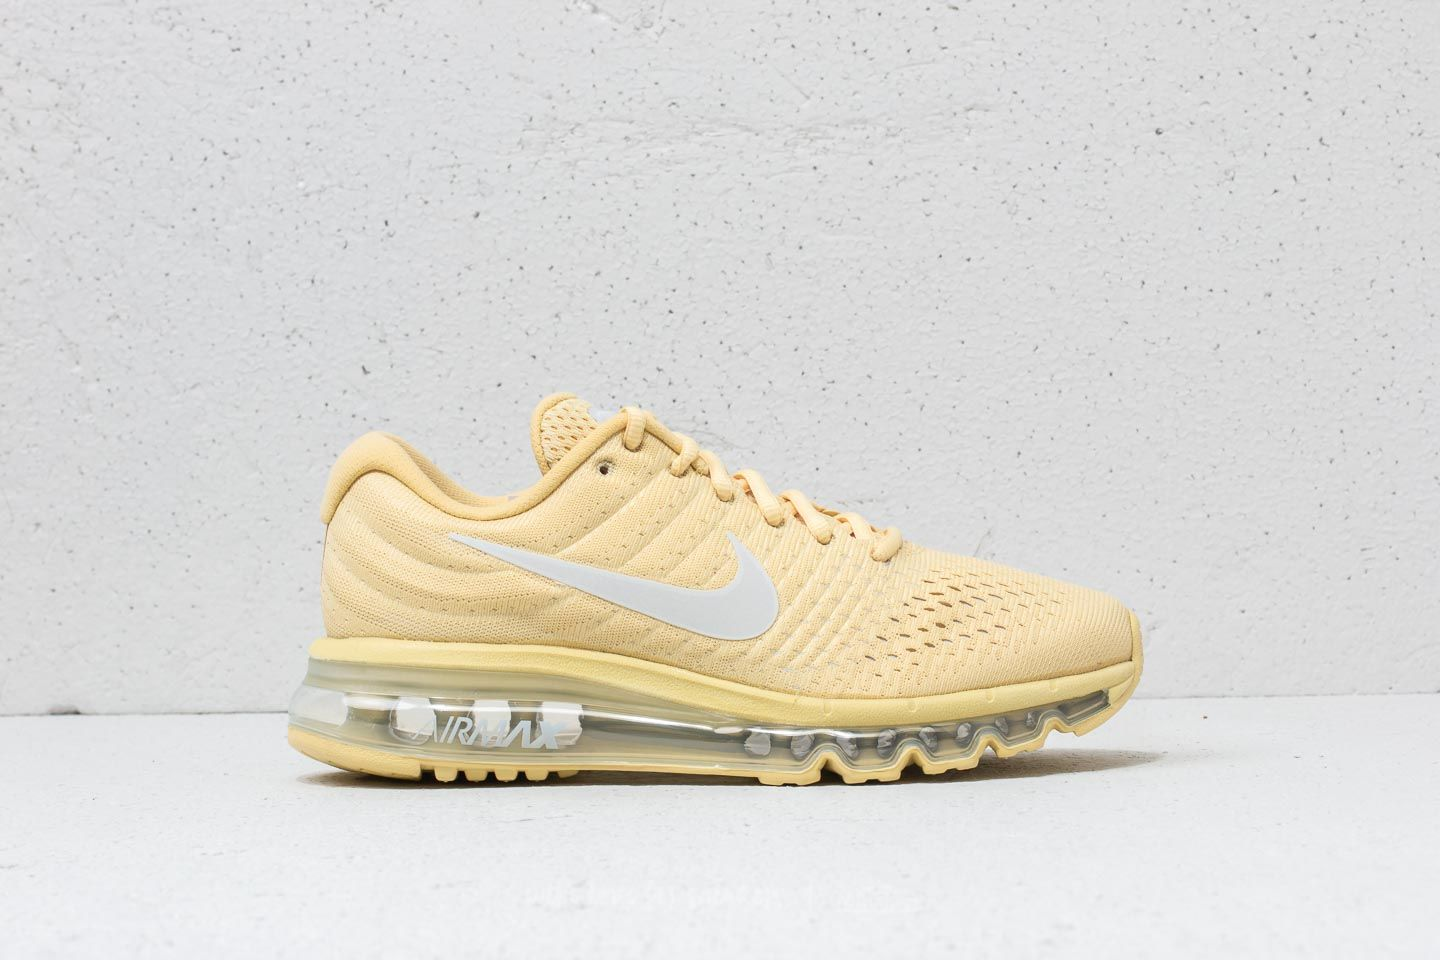 new style df8a7 30f1a Nike WMNS Air Max 2017 SE Lemon Wash Pure Platinum at a great price 191